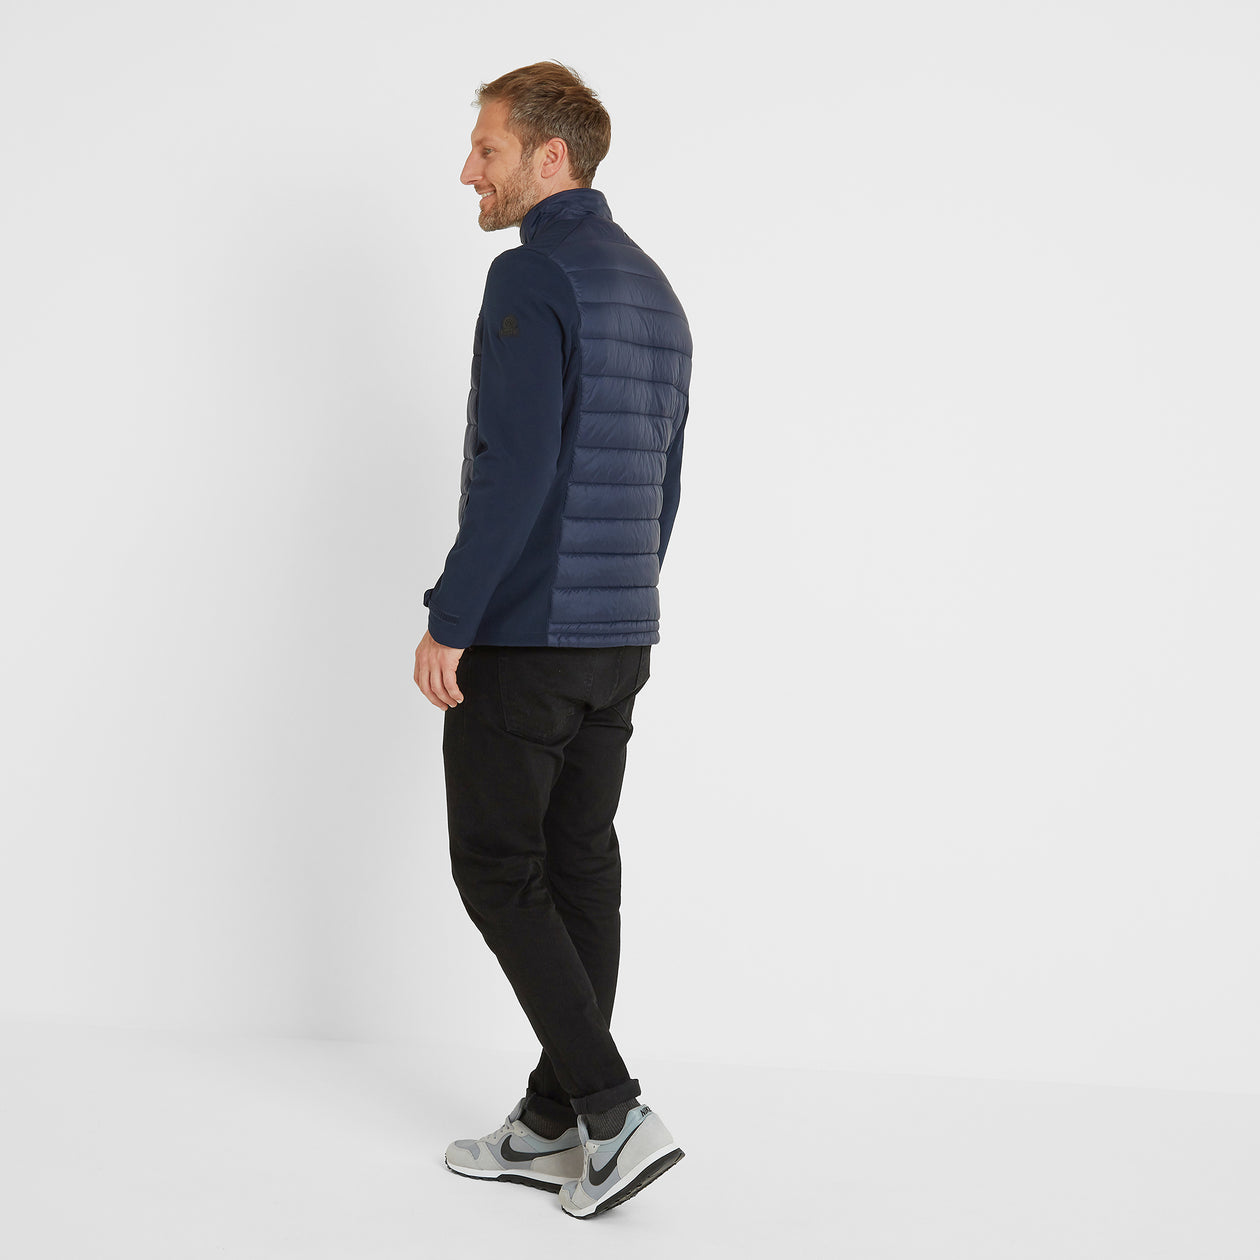 Stamford Mens Insulated Jacket - Navy image 4